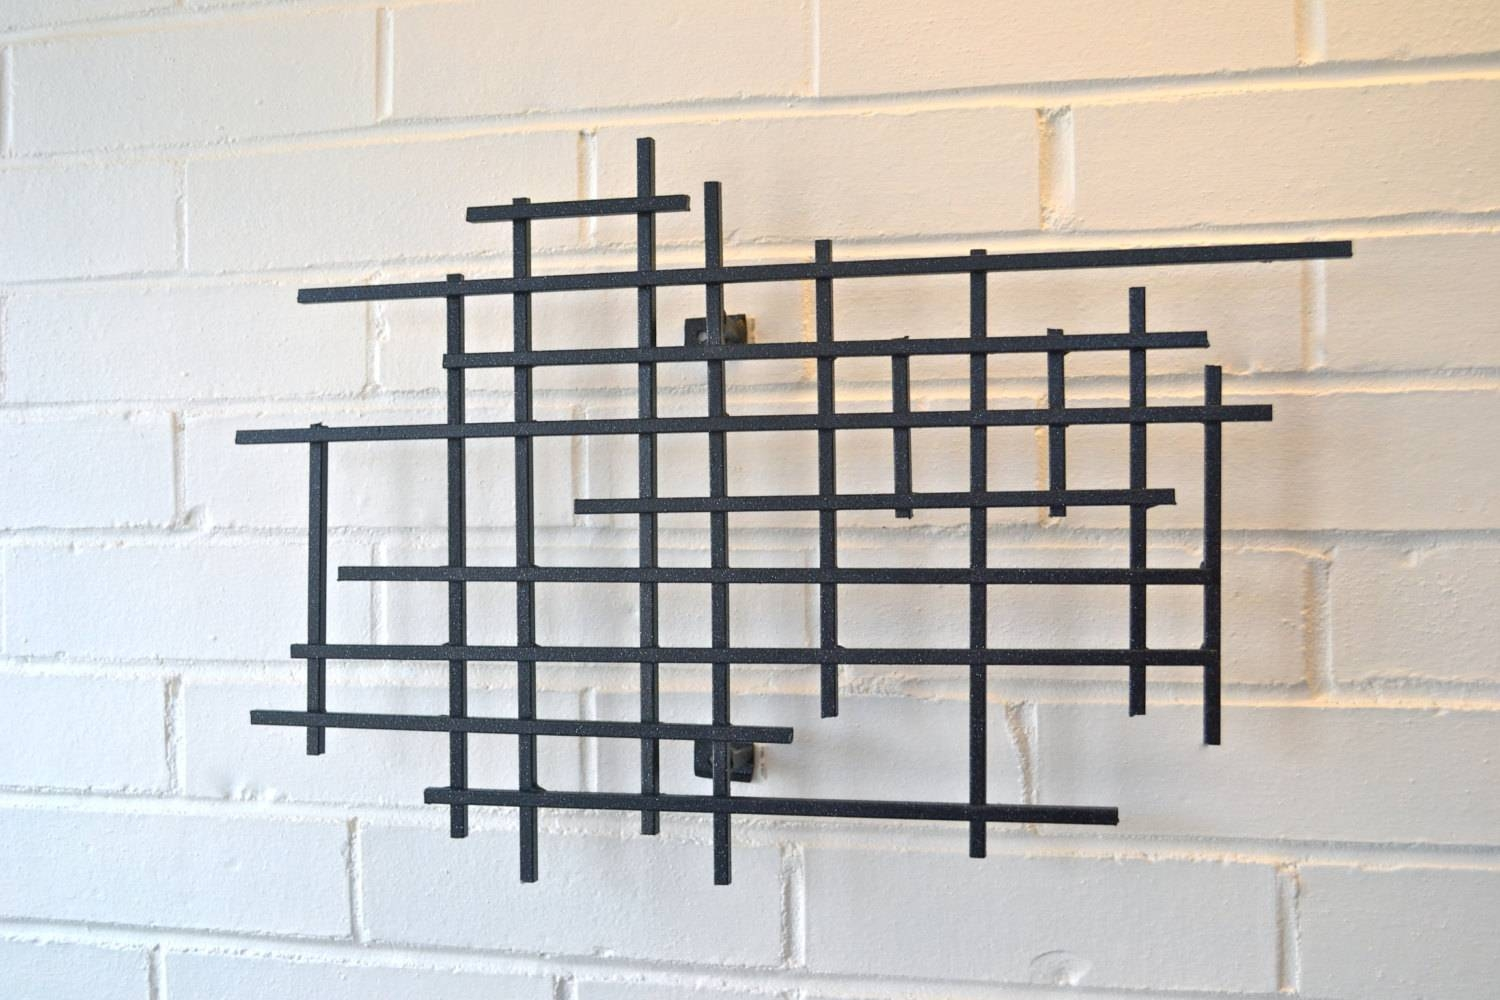 Small Square Metal Art Sculpture Modern Steel Decor Decoration 3d Intended For 2018 Small Metal Wall Art Decor (View 11 of 20)